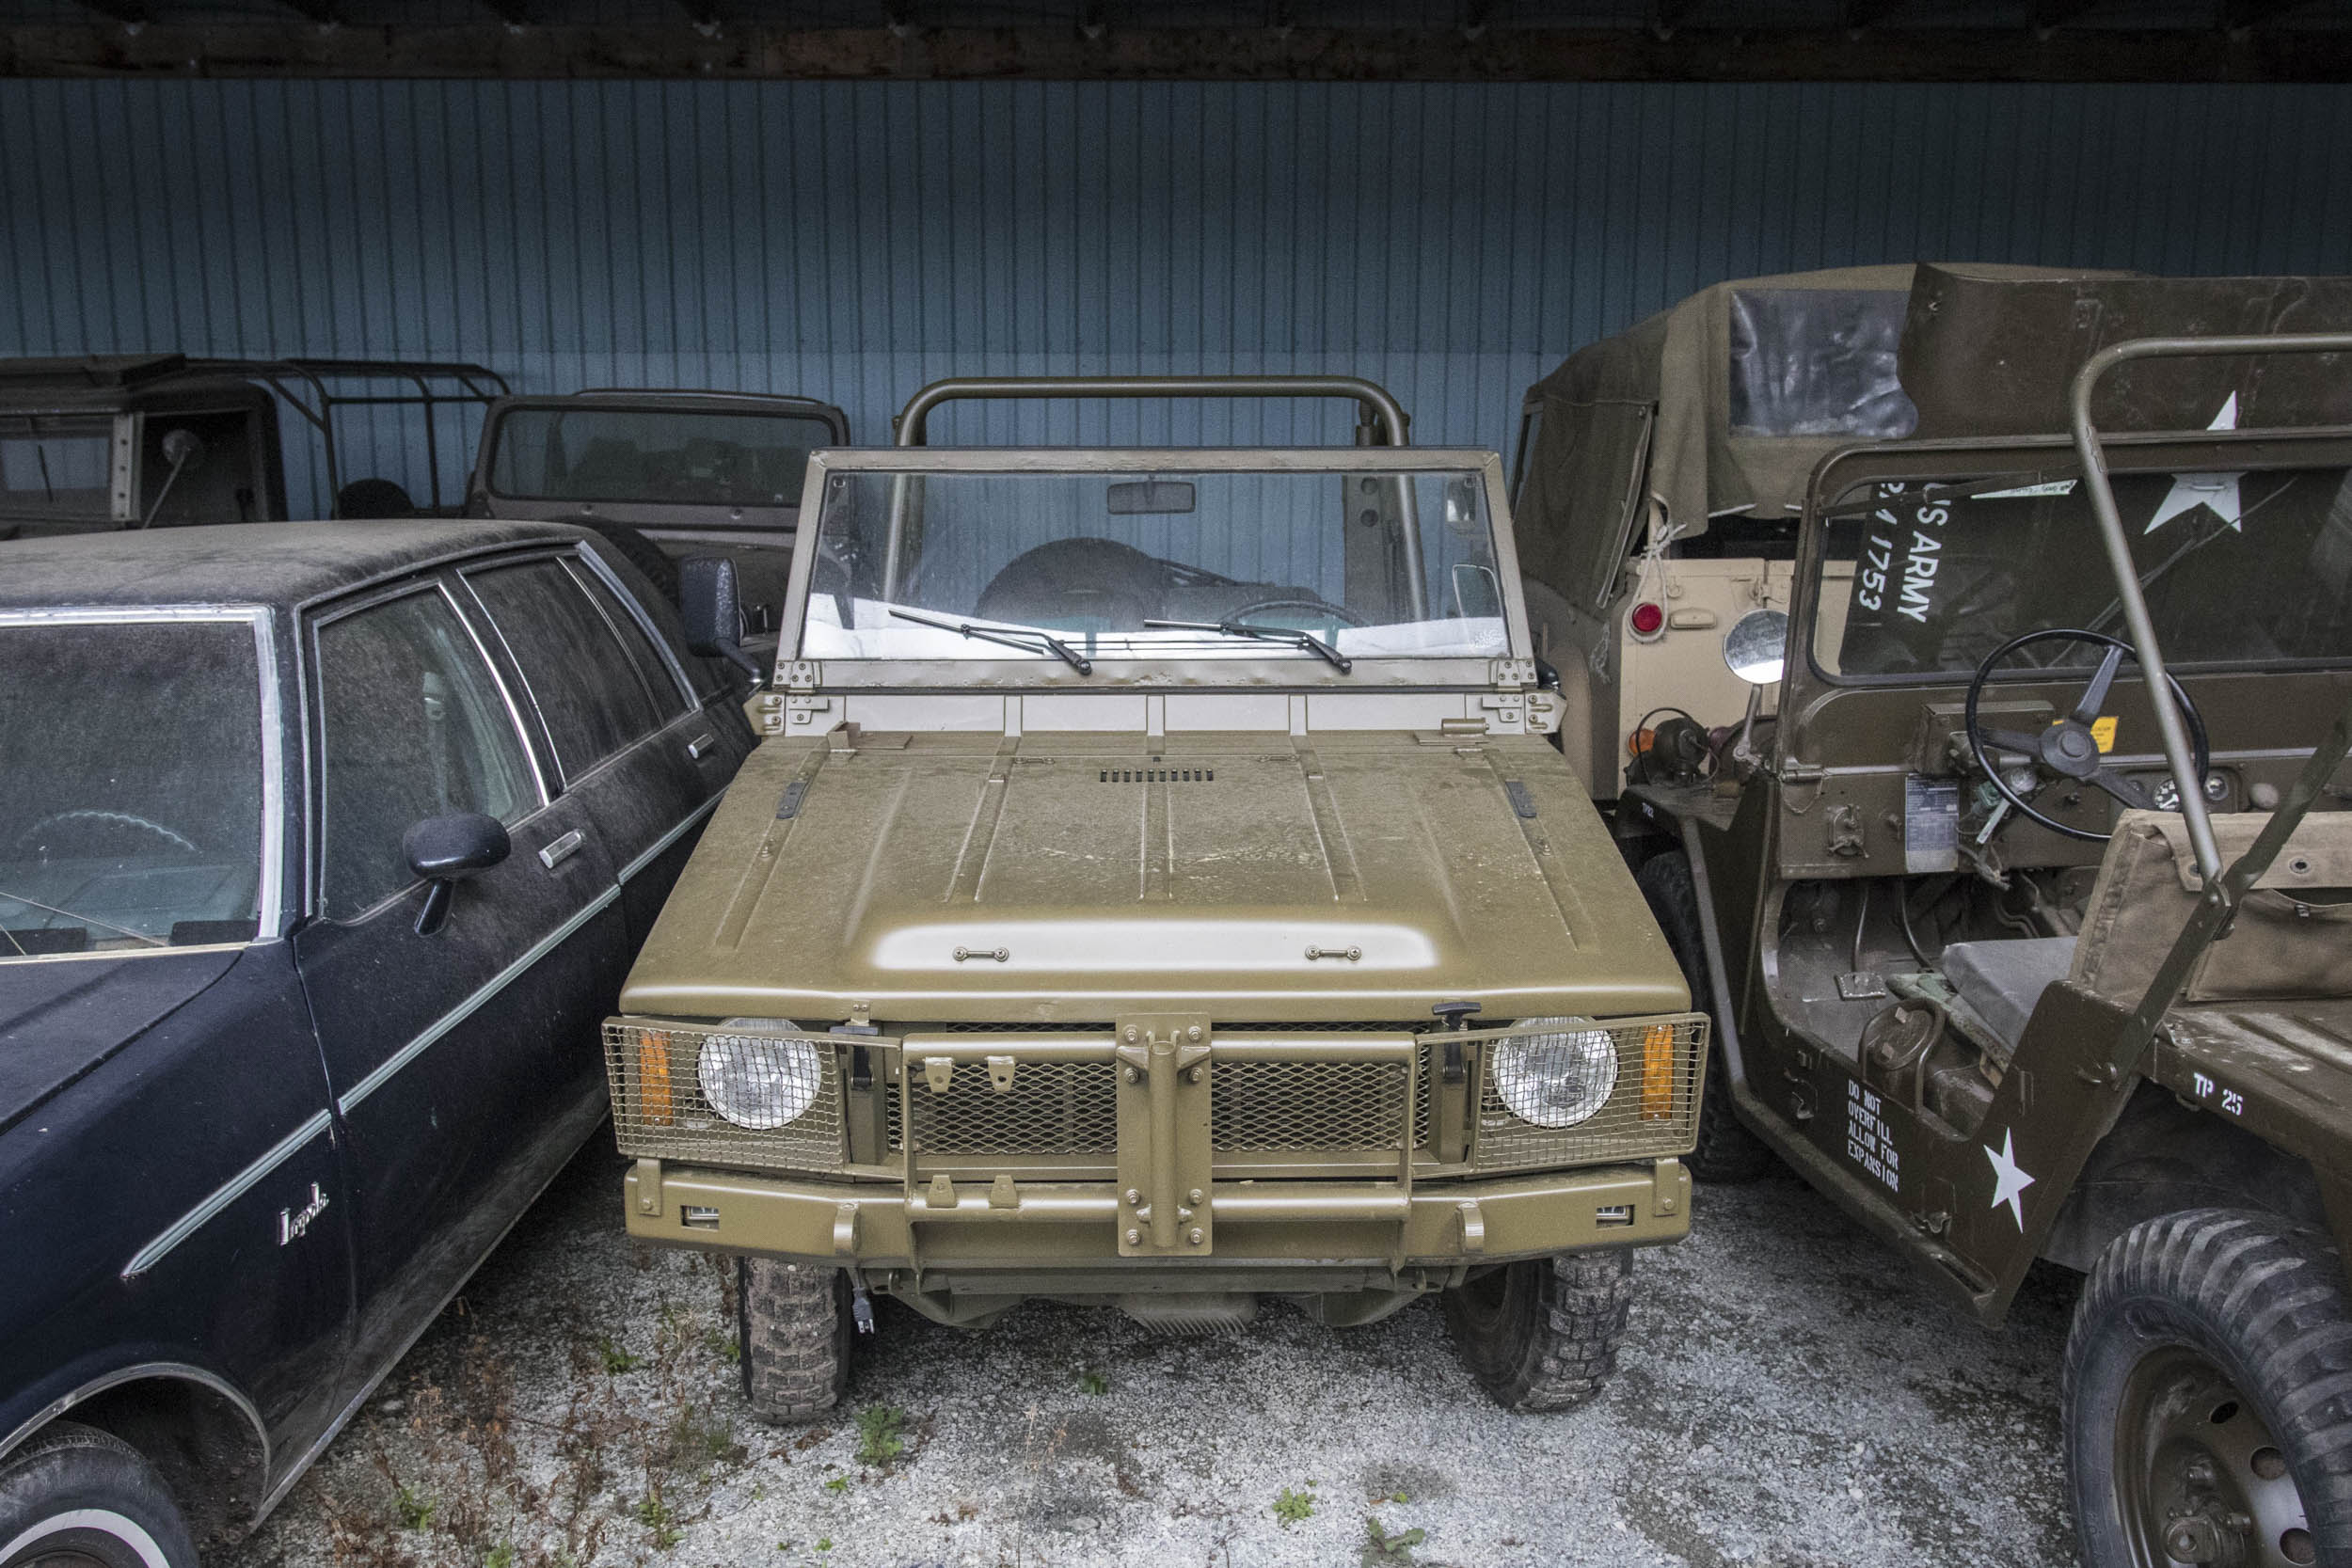 Designed by Audi but badged as a Volkswagen, the Iltis was a burly little Jeep replacement for the German Army. It wasn't particularly refined, but the 1.7-liter four-cylinder was durable, and the four-wheel-drive system was so good it eventually inspired Audi's Quattro.